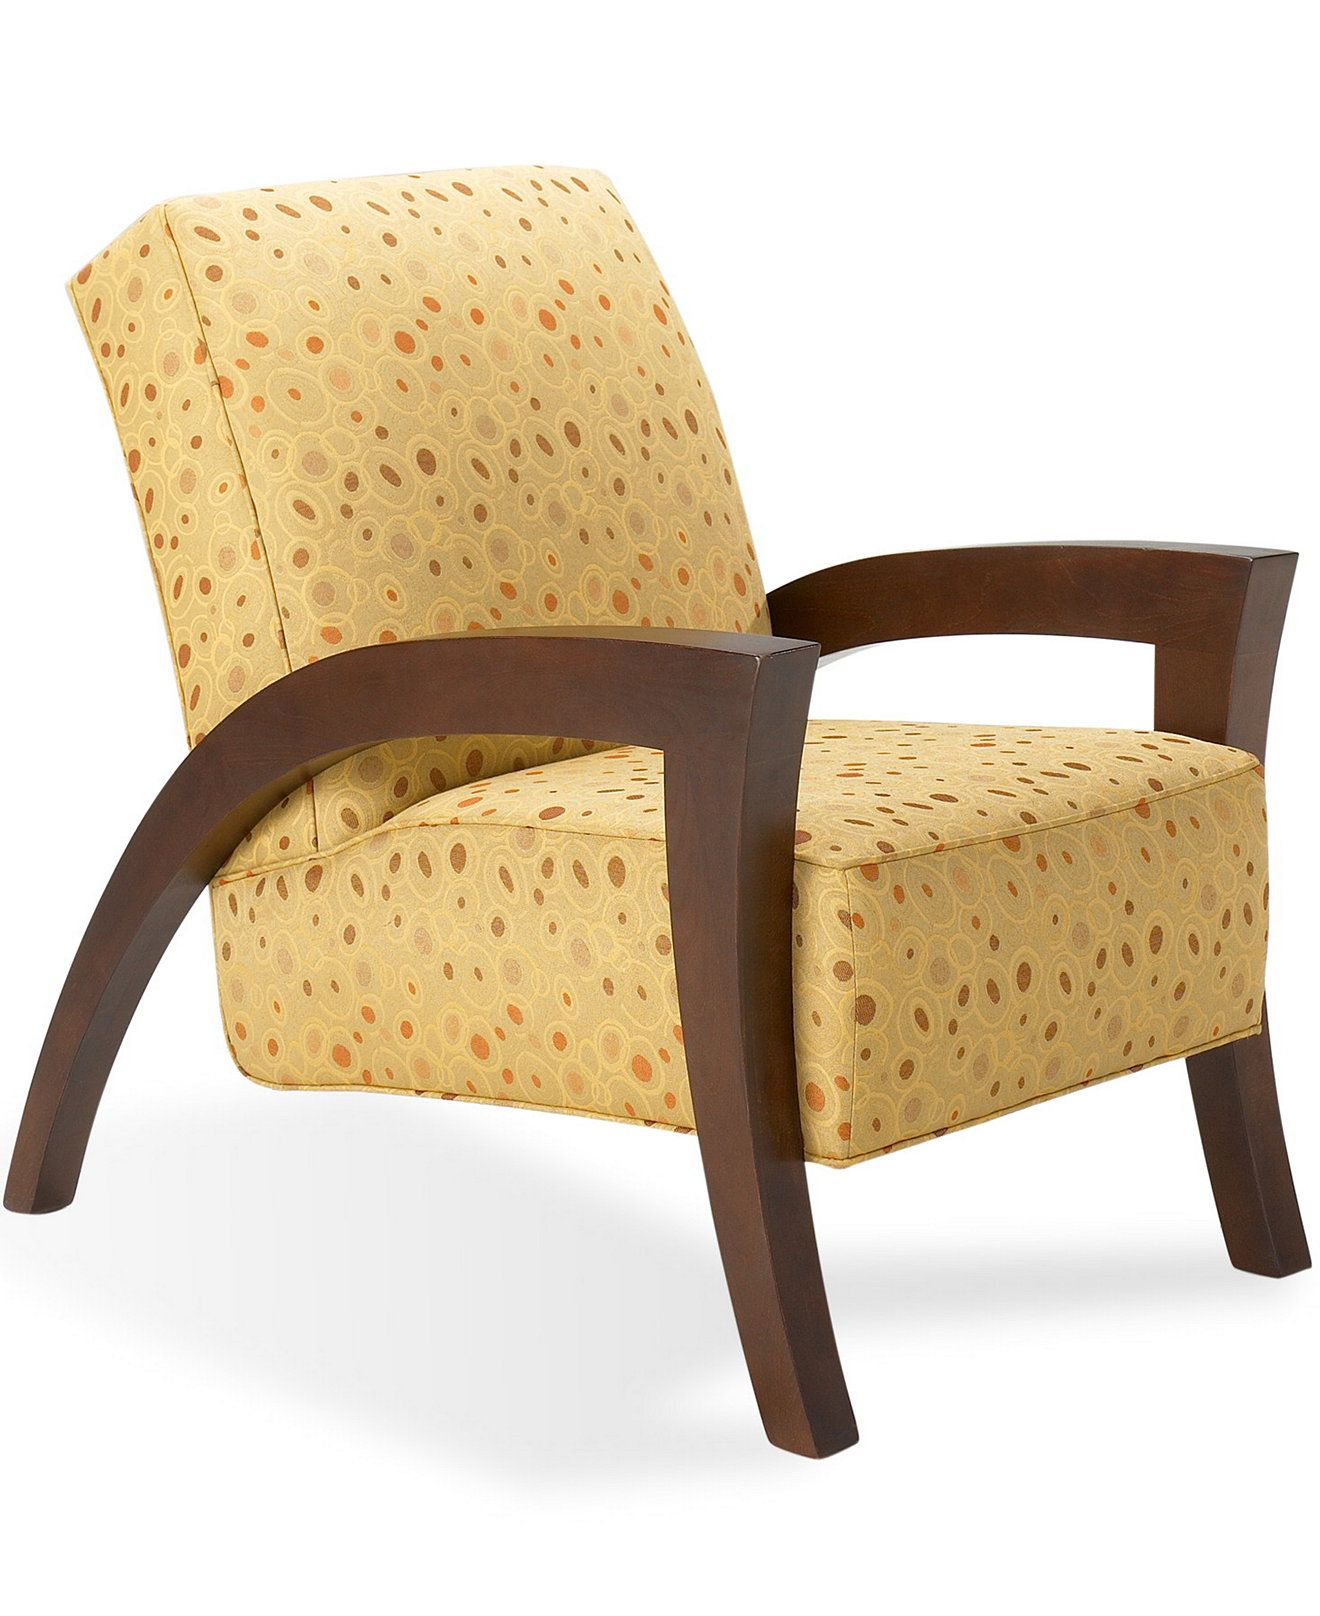 Grasshopper Living Room Chair Accent Chair Chairs Recliners Furniture Macy S Living Room Sets Furniture Living Room Chairs Office Furniture Chairs